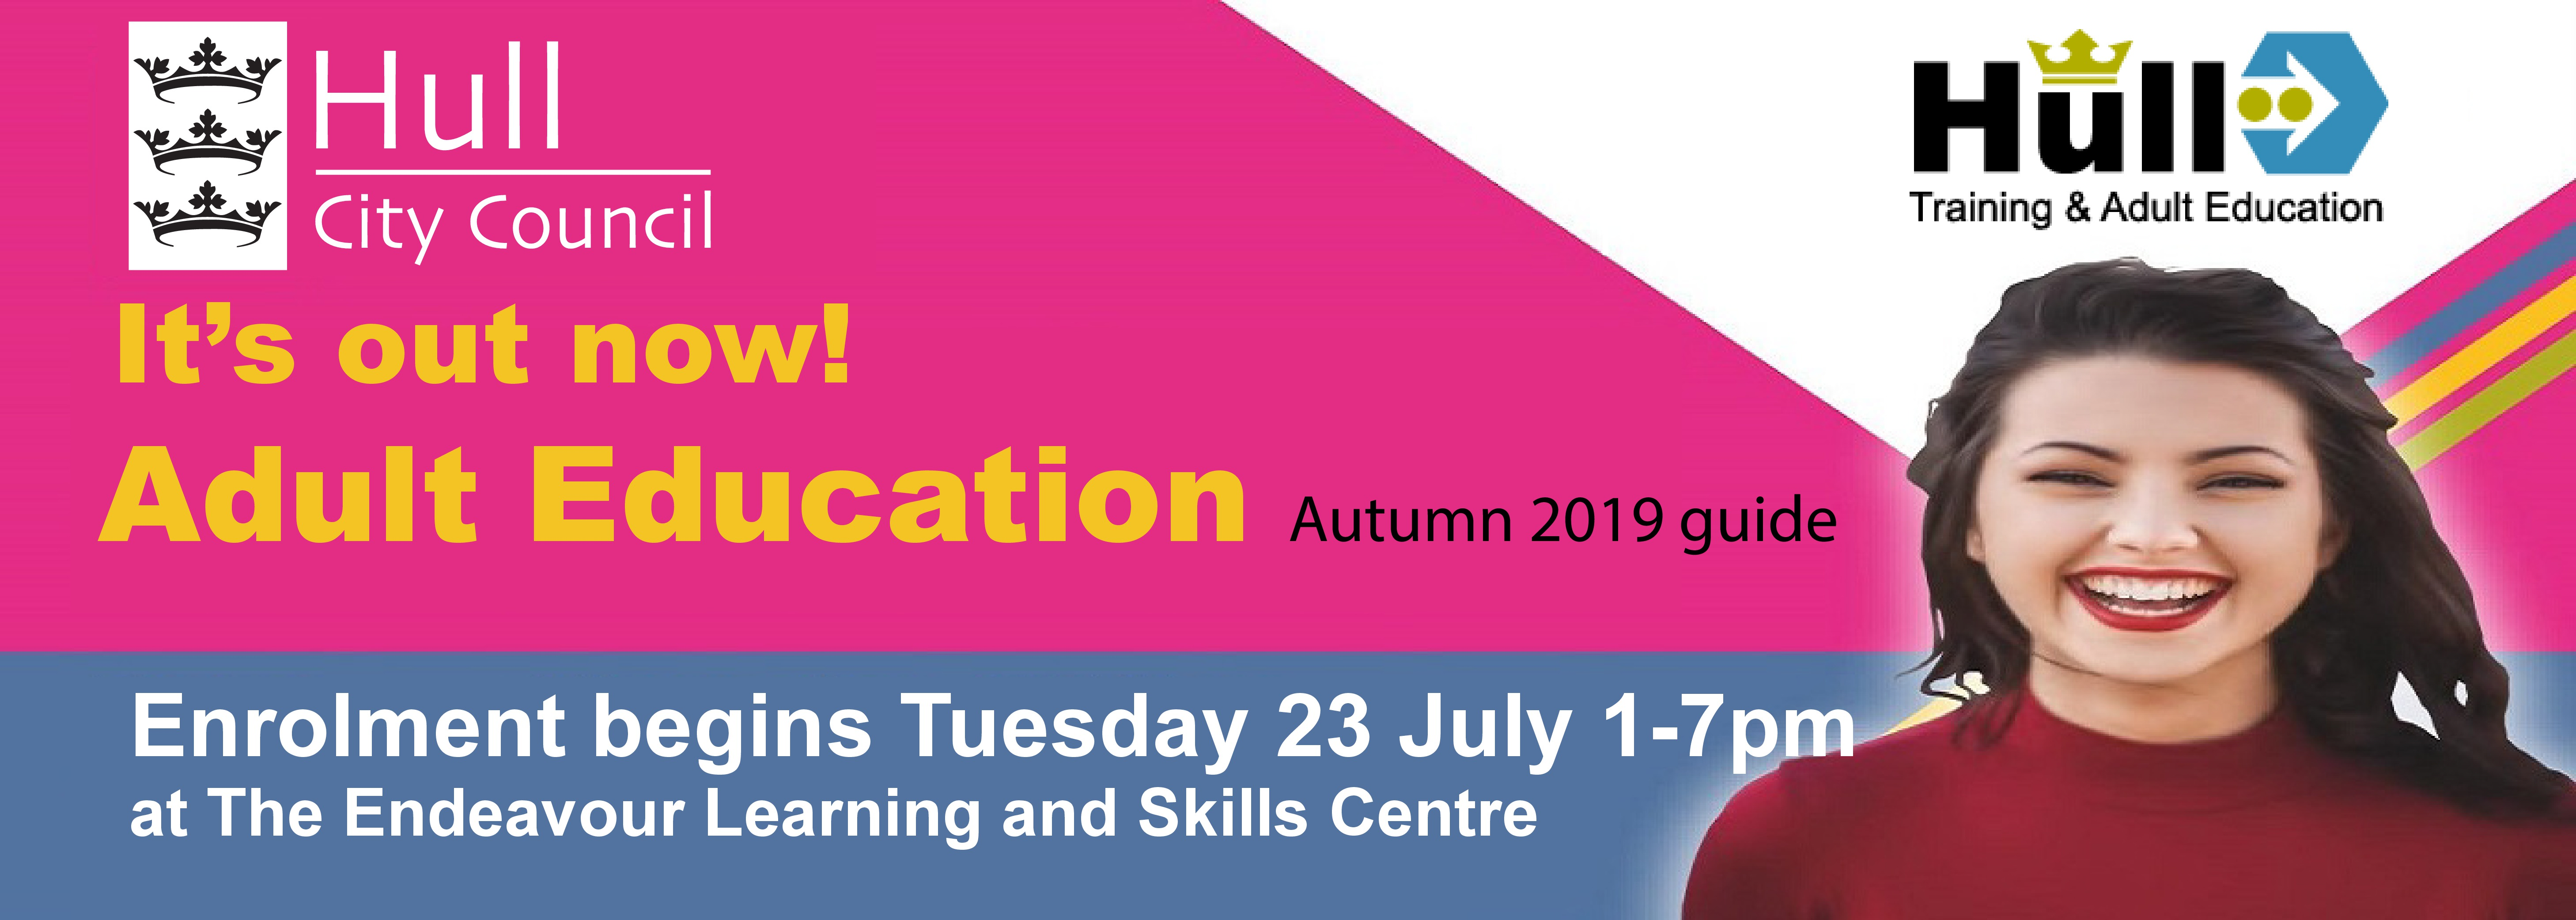 Adult Education Autumn 2019 guide - out now